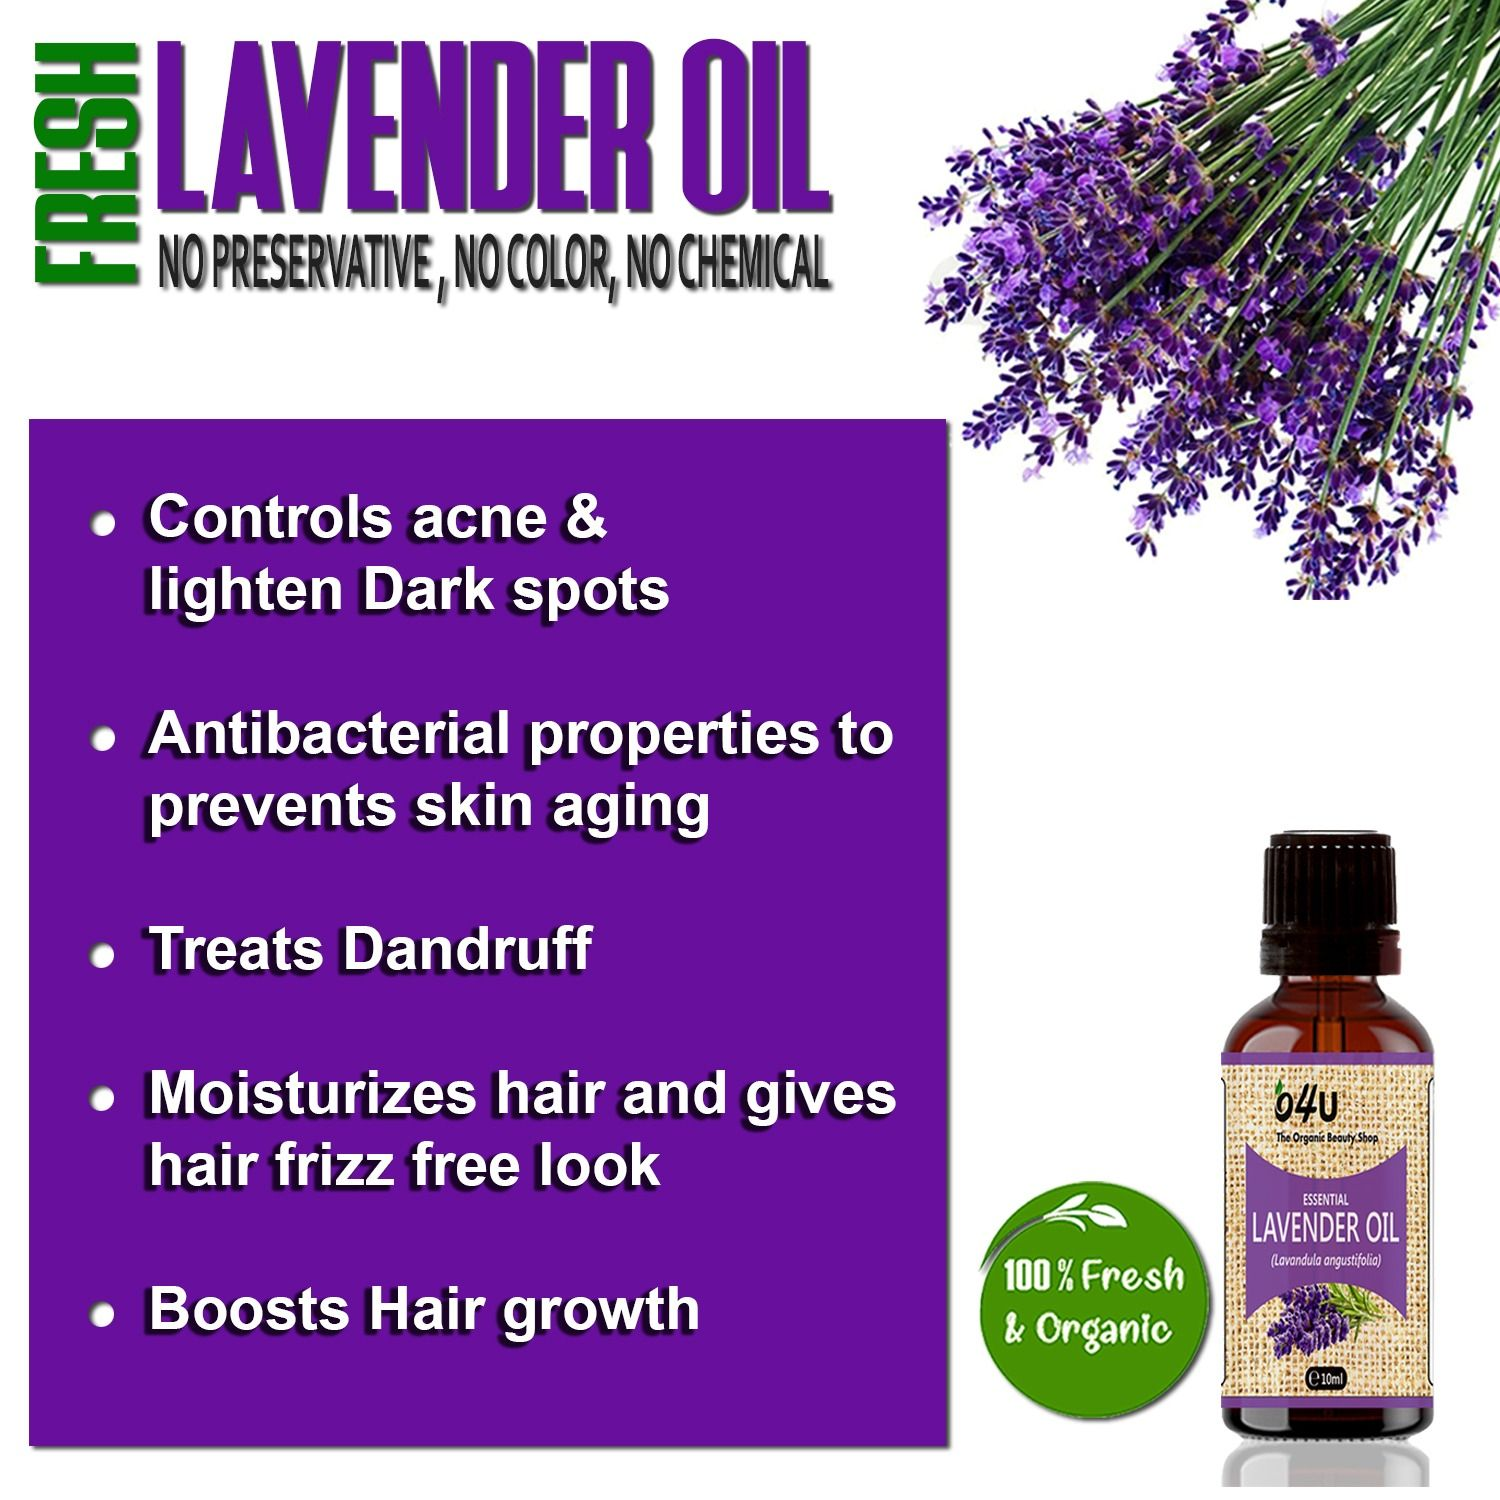 Naturally Steam Distilled From The Freshly Flowers Of The Lavender Plant Lavender Oil Promotes Hair Growth Strengthens Organic Hair Care Organic Essential Oil Carrier Oils